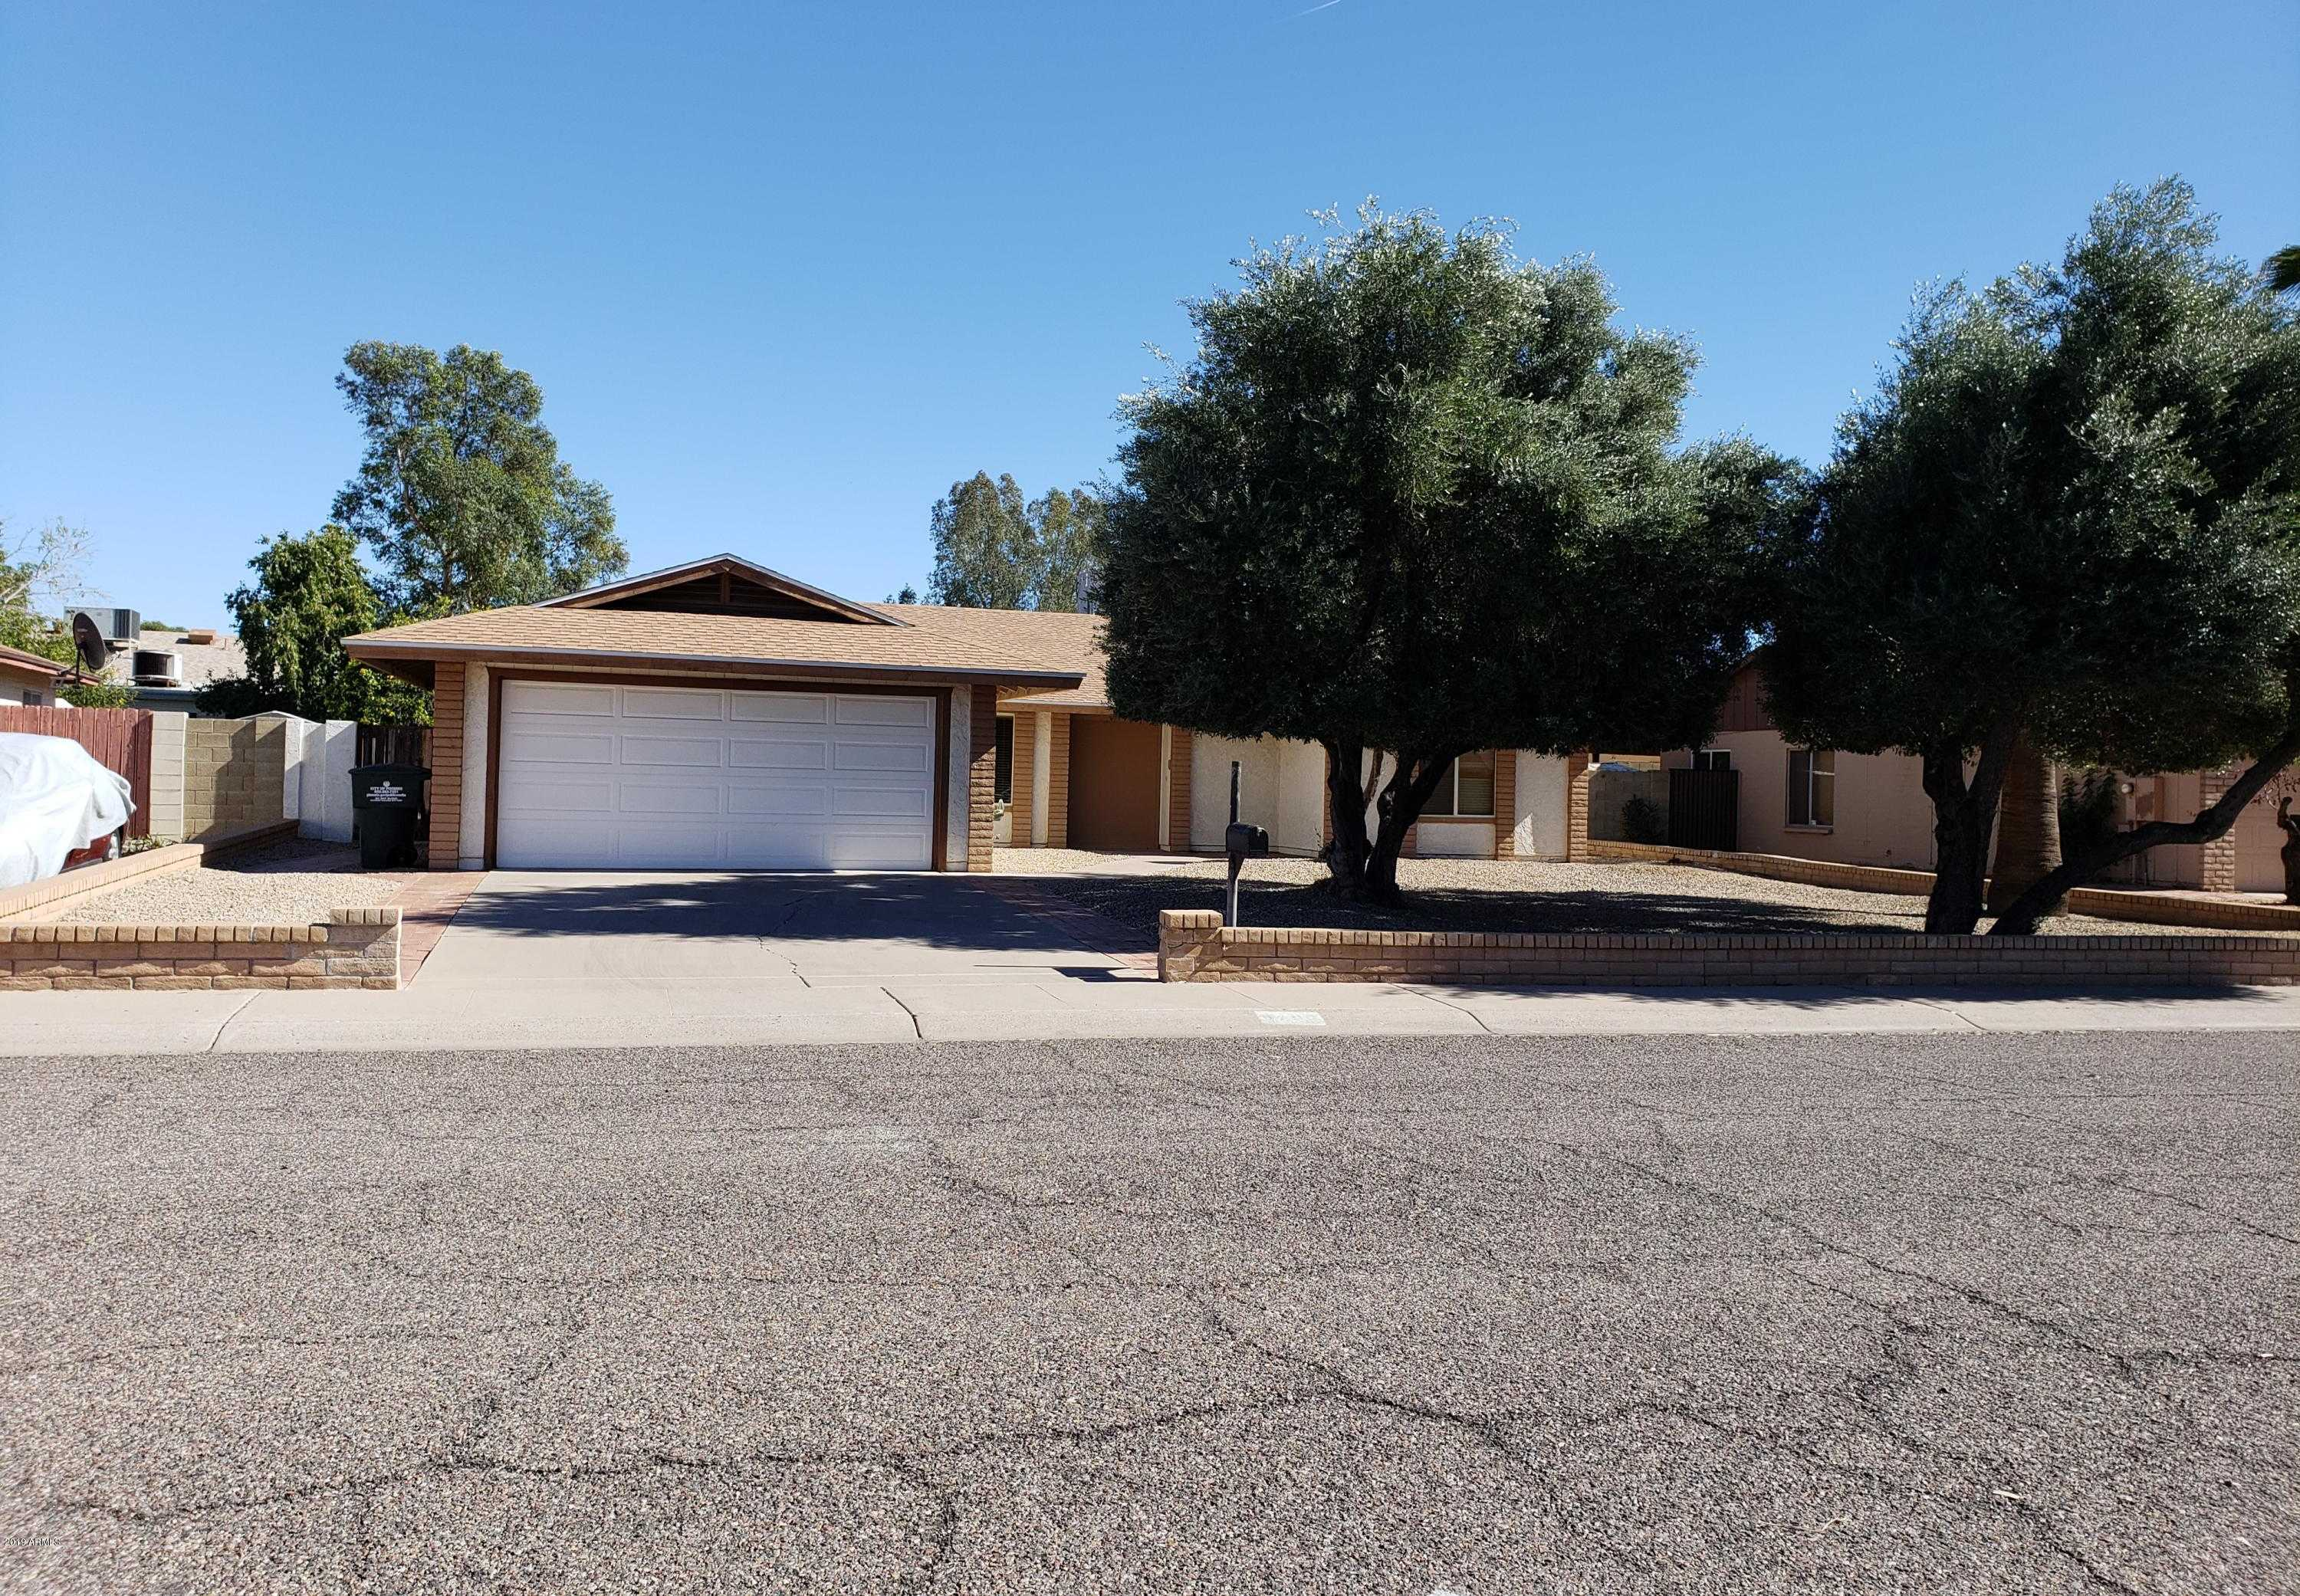 $247,000 - 3Br/2Ba - Home for Sale in West Plaza 28 Lot 986-1130, Phoenix